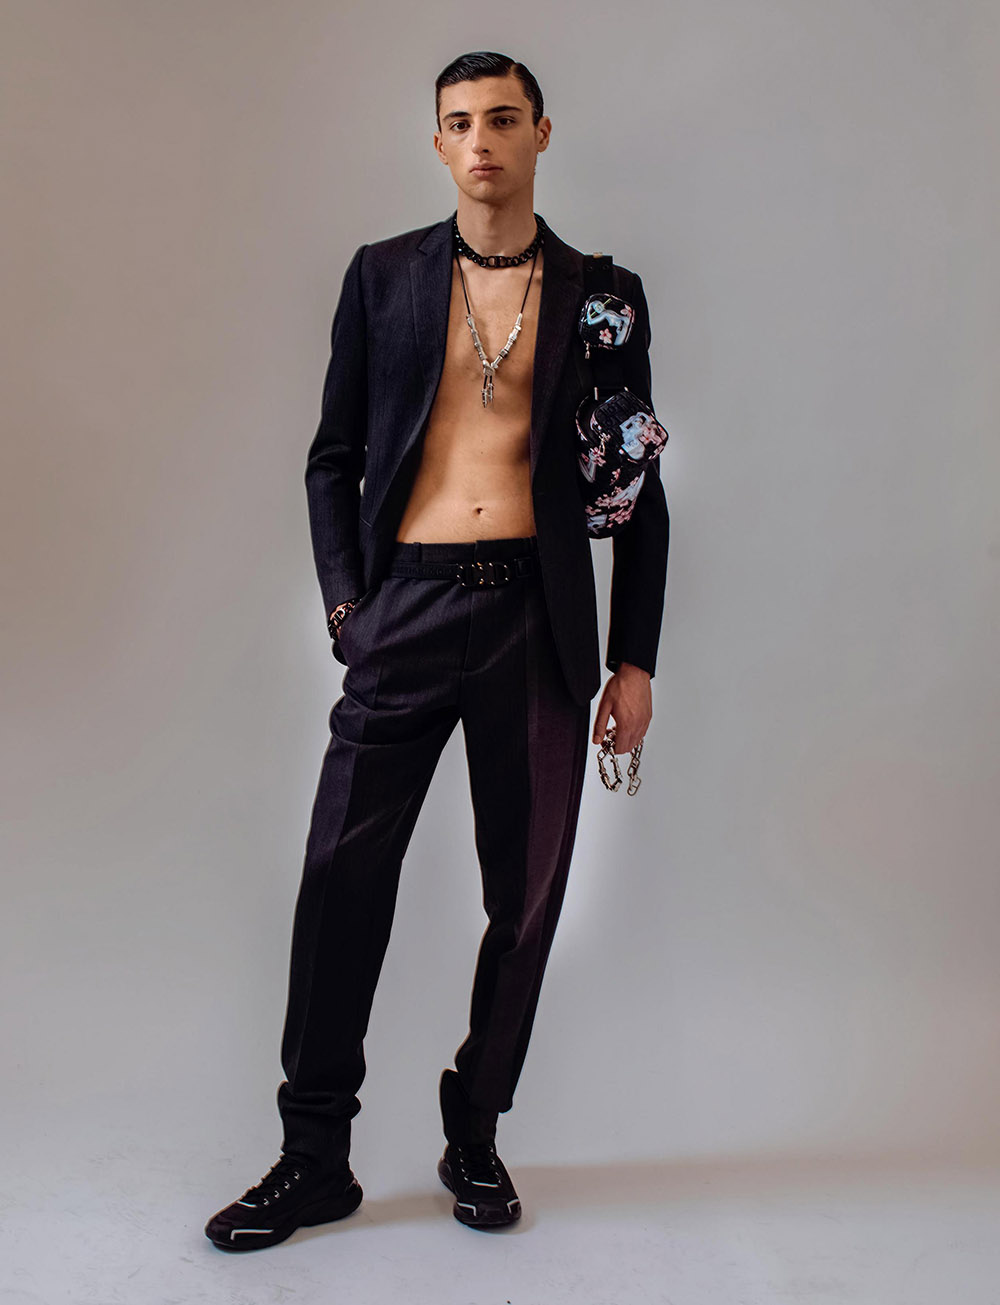 ''Dior Monsieur'' by Bilal El Kadhi for Lui Magazine Summer 2019